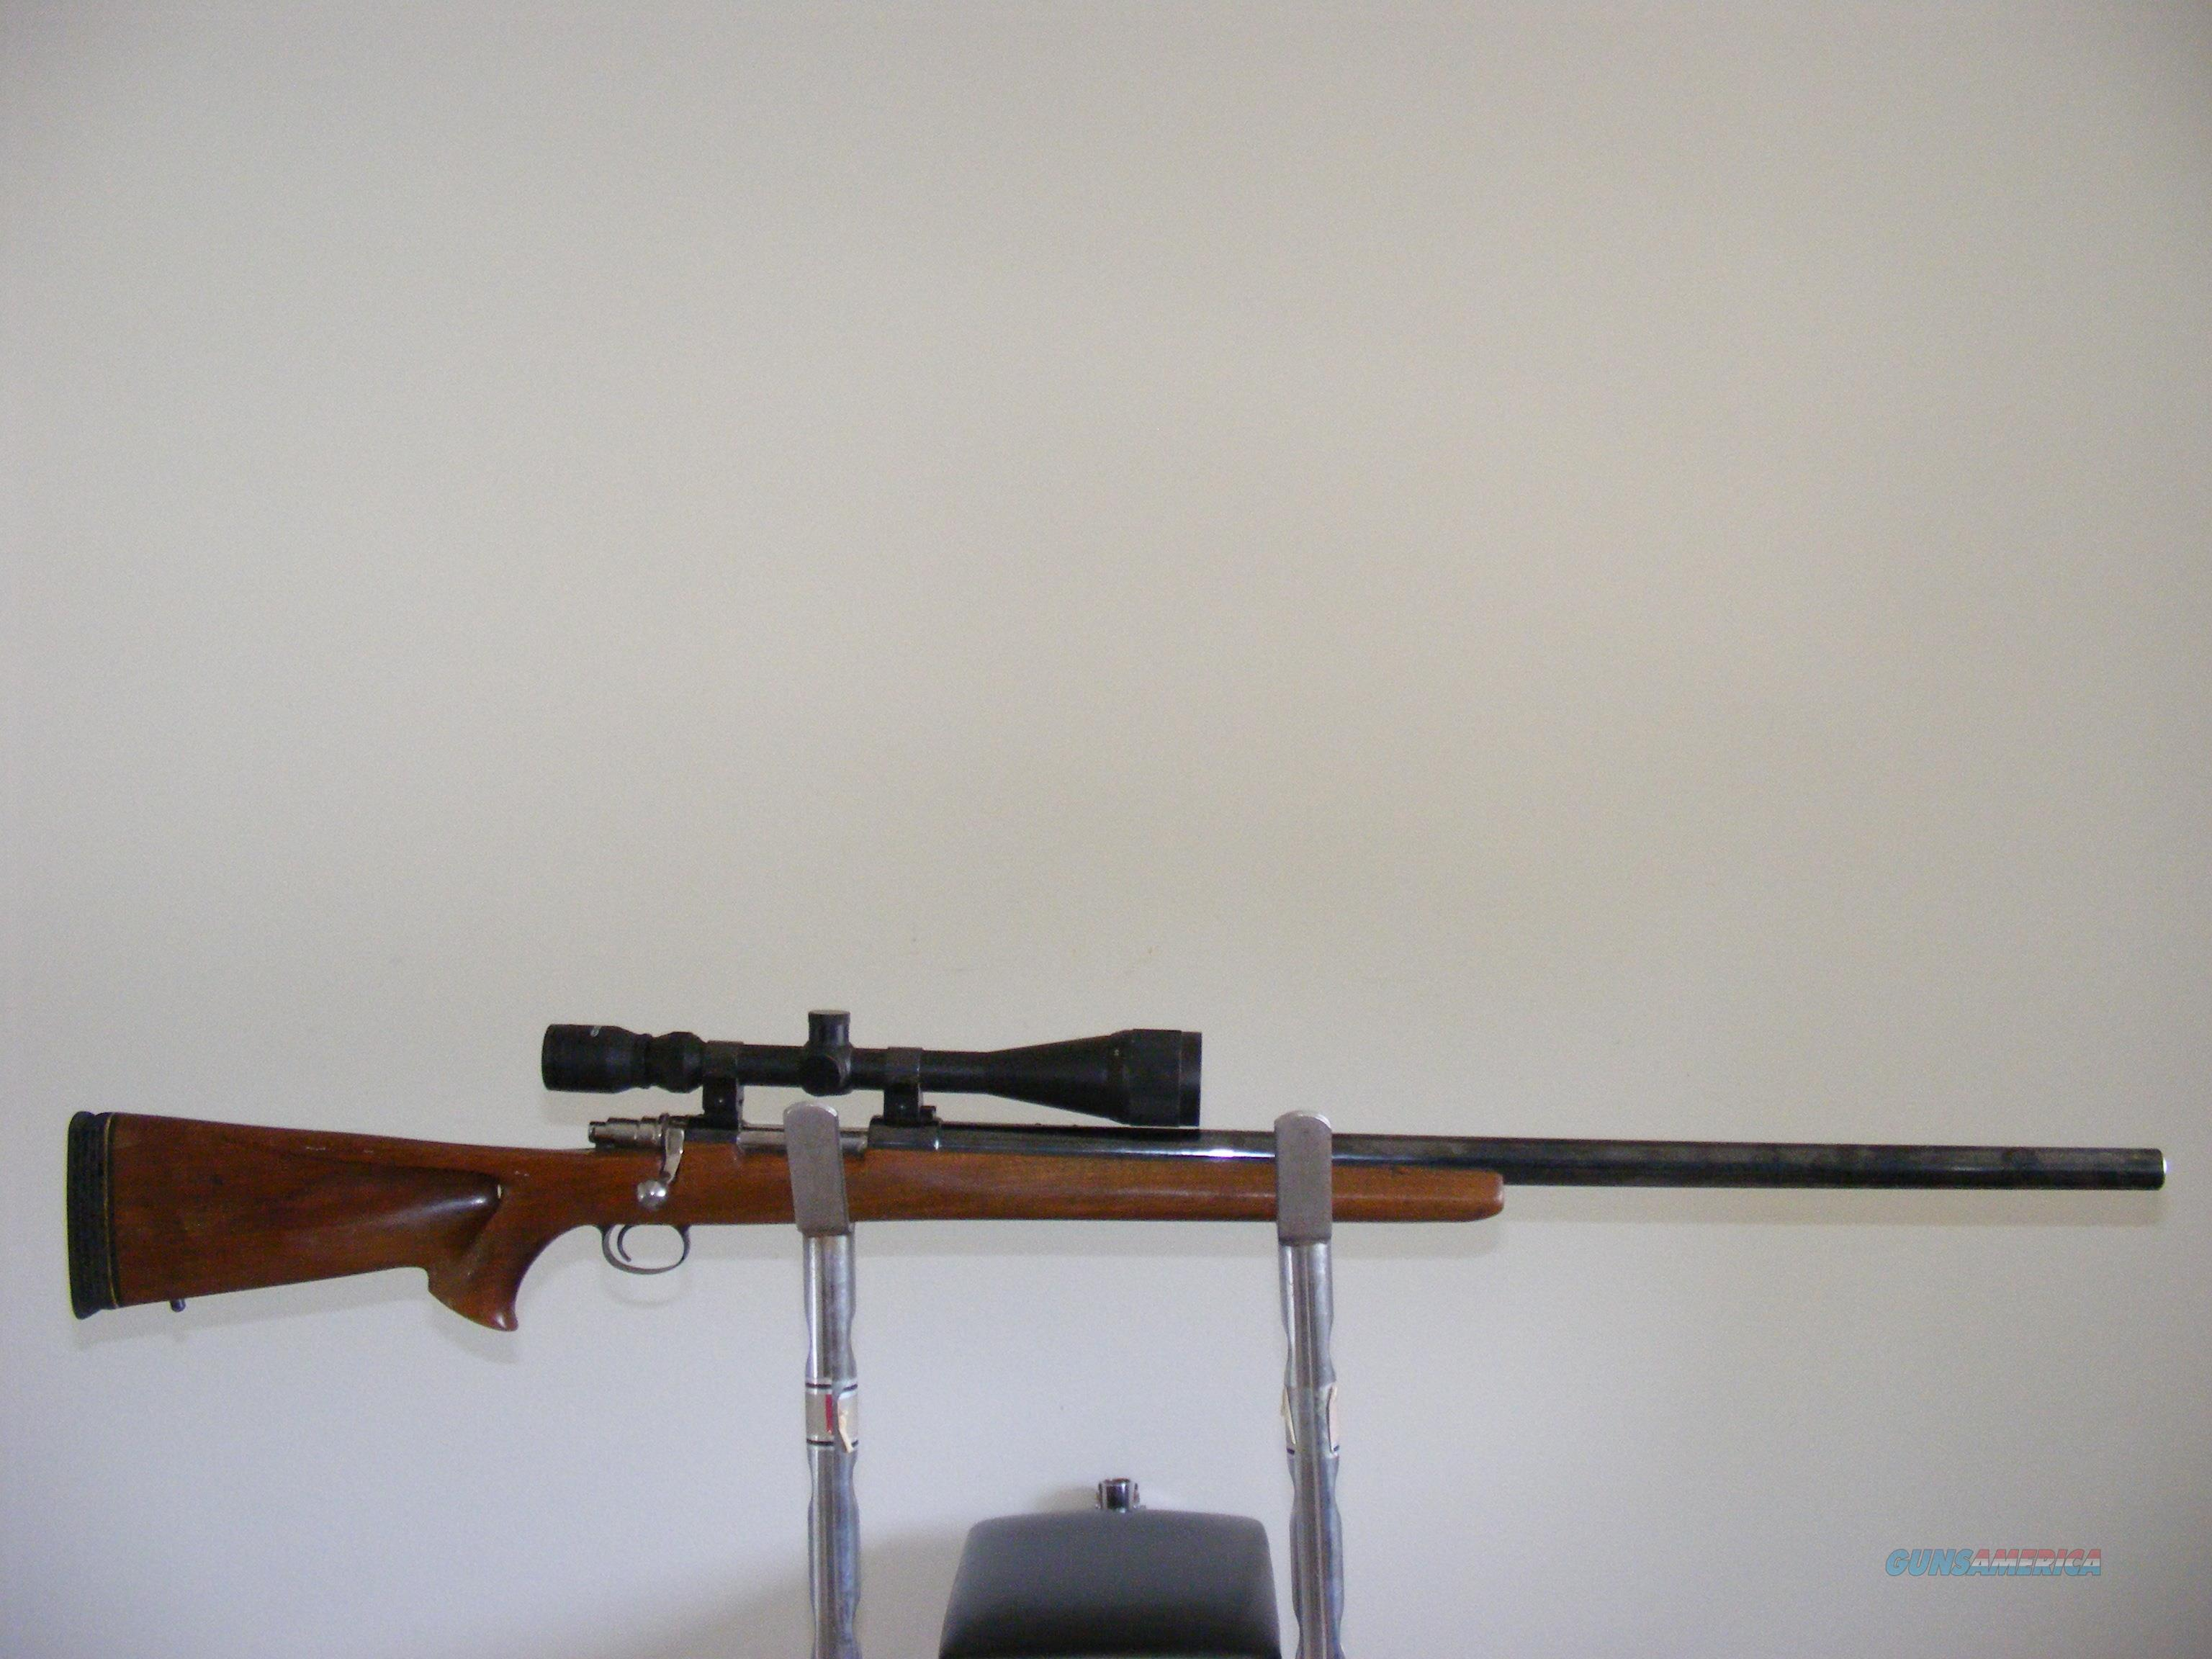 Weatherby 300 mag choked down to 6.5mm  Guns > Rifles > Weatherby Rifles > Tactical